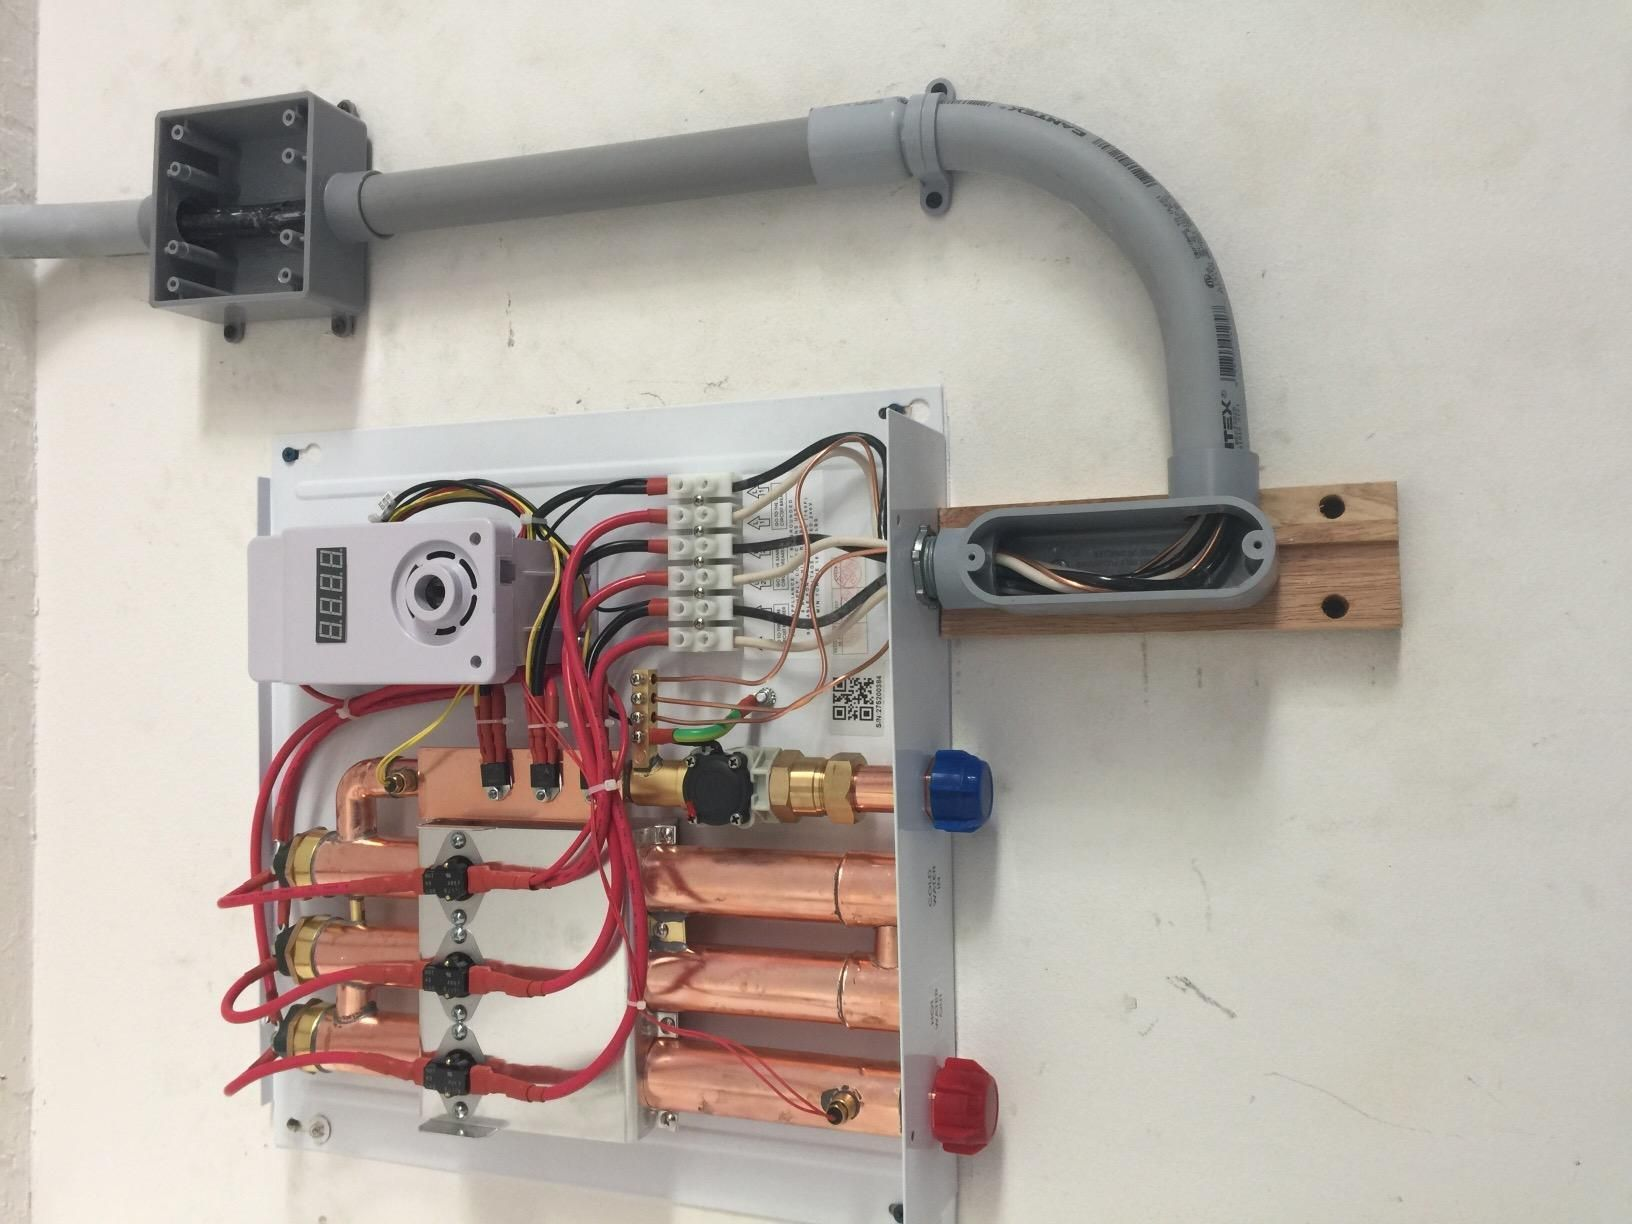 prior to purchase and installation please verify this model is the rights size for your hot water needs and electrical requirements  [ 1632 x 1224 Pixel ]